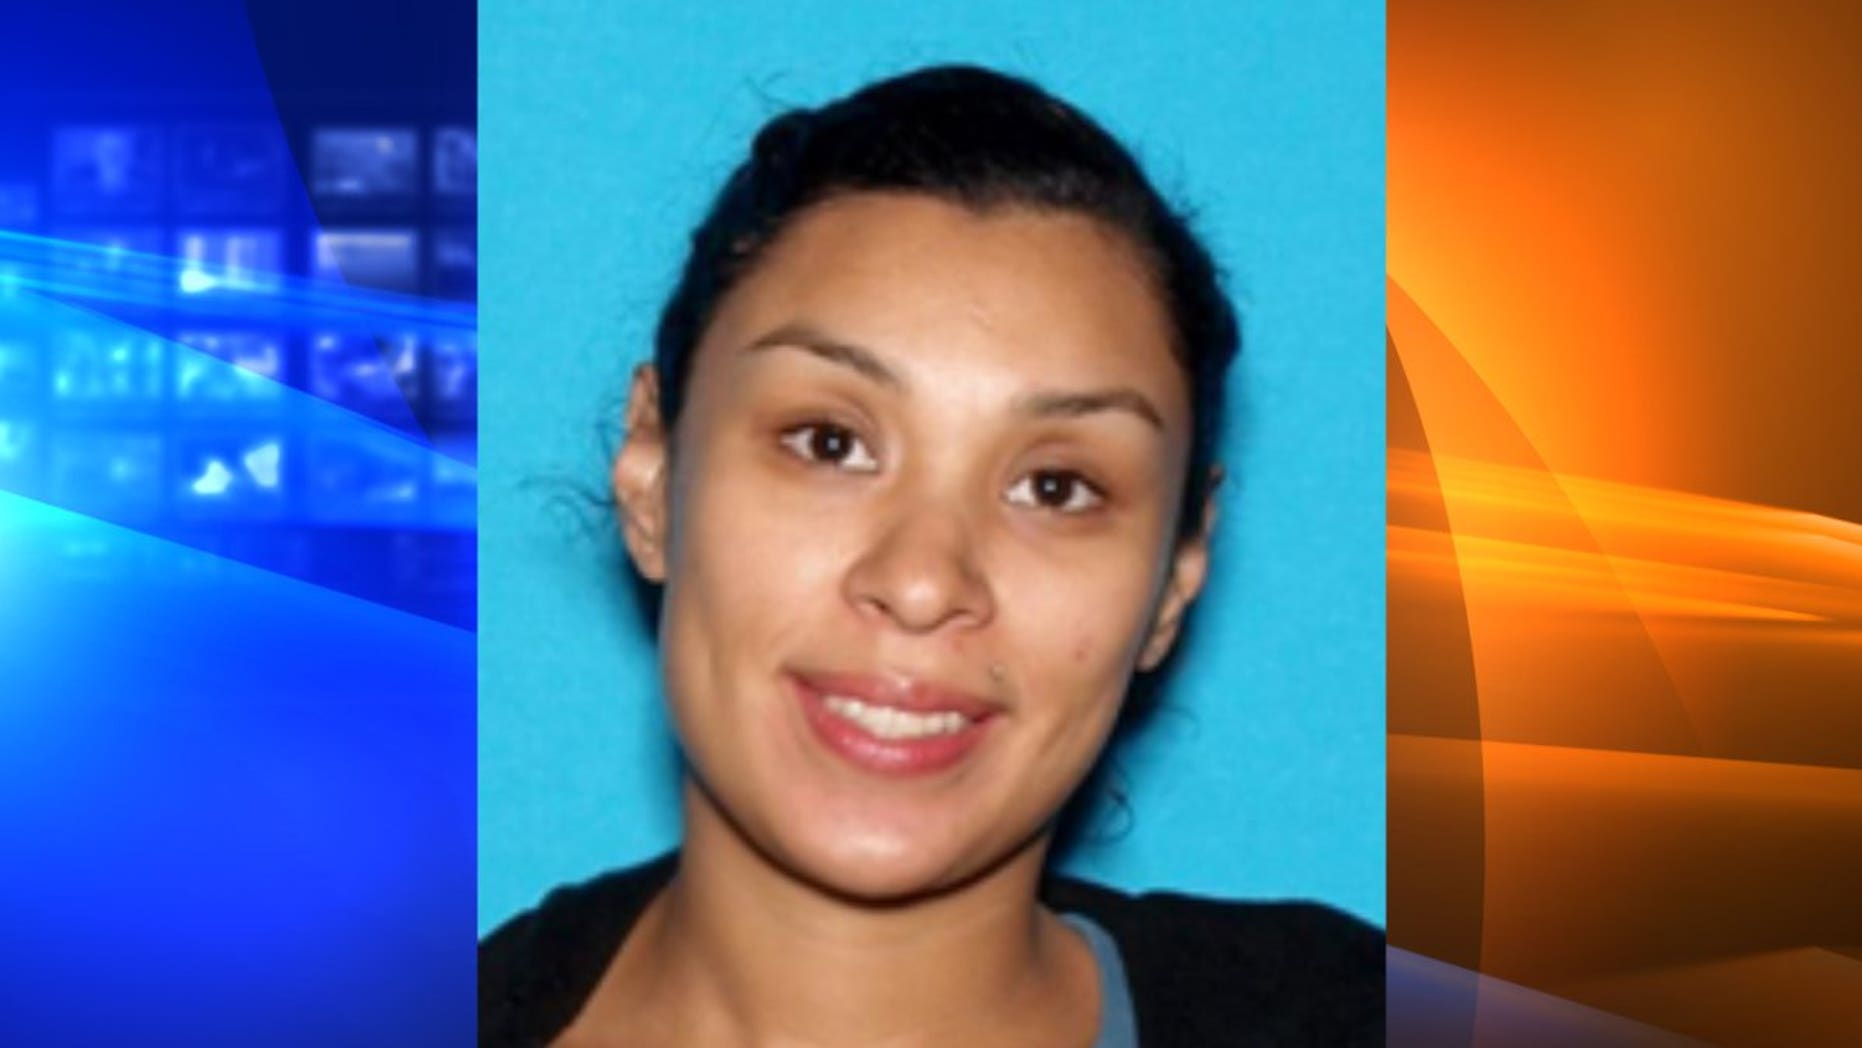 Mercedes Vanesa Guevara, 31, was taken into custody on Monday in the hit-and-run death of a pregnant woman in San Bernardino, California, last week.